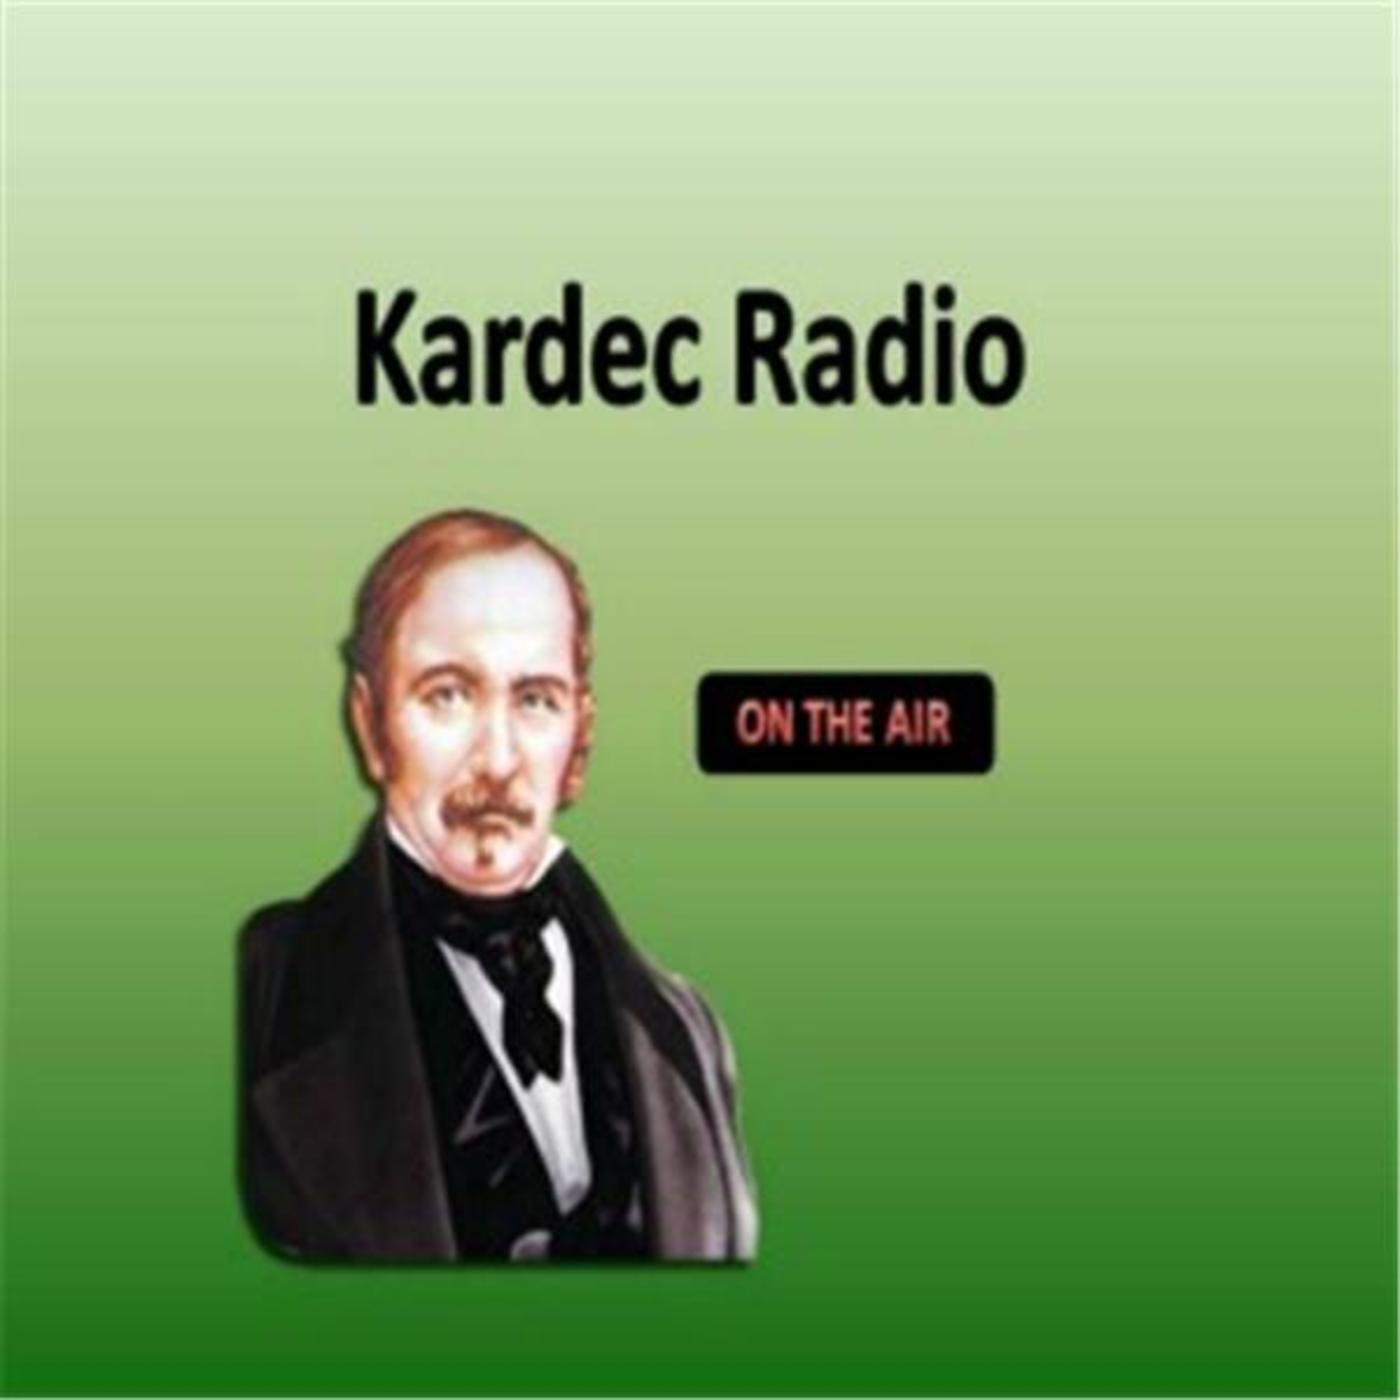 Kardec Radio Talk Shows